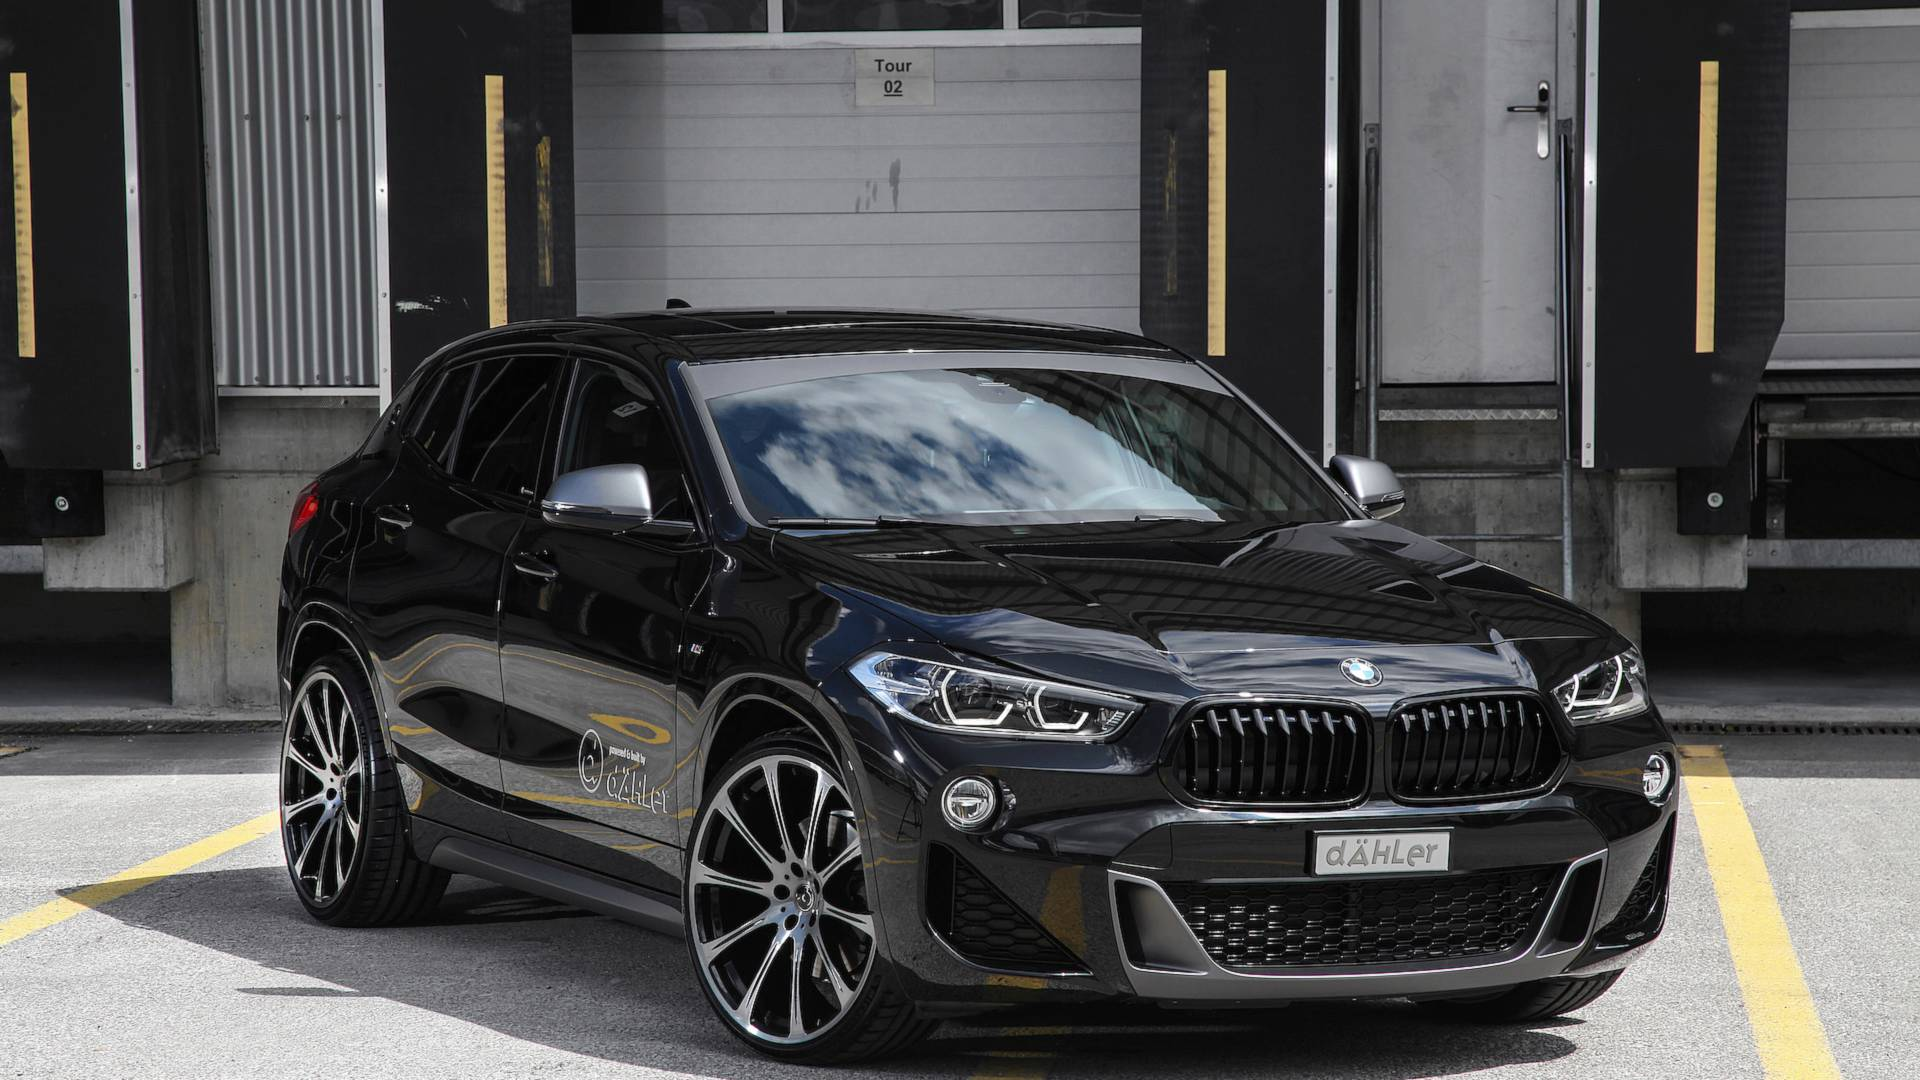 BMW X2 by Dahler (12)